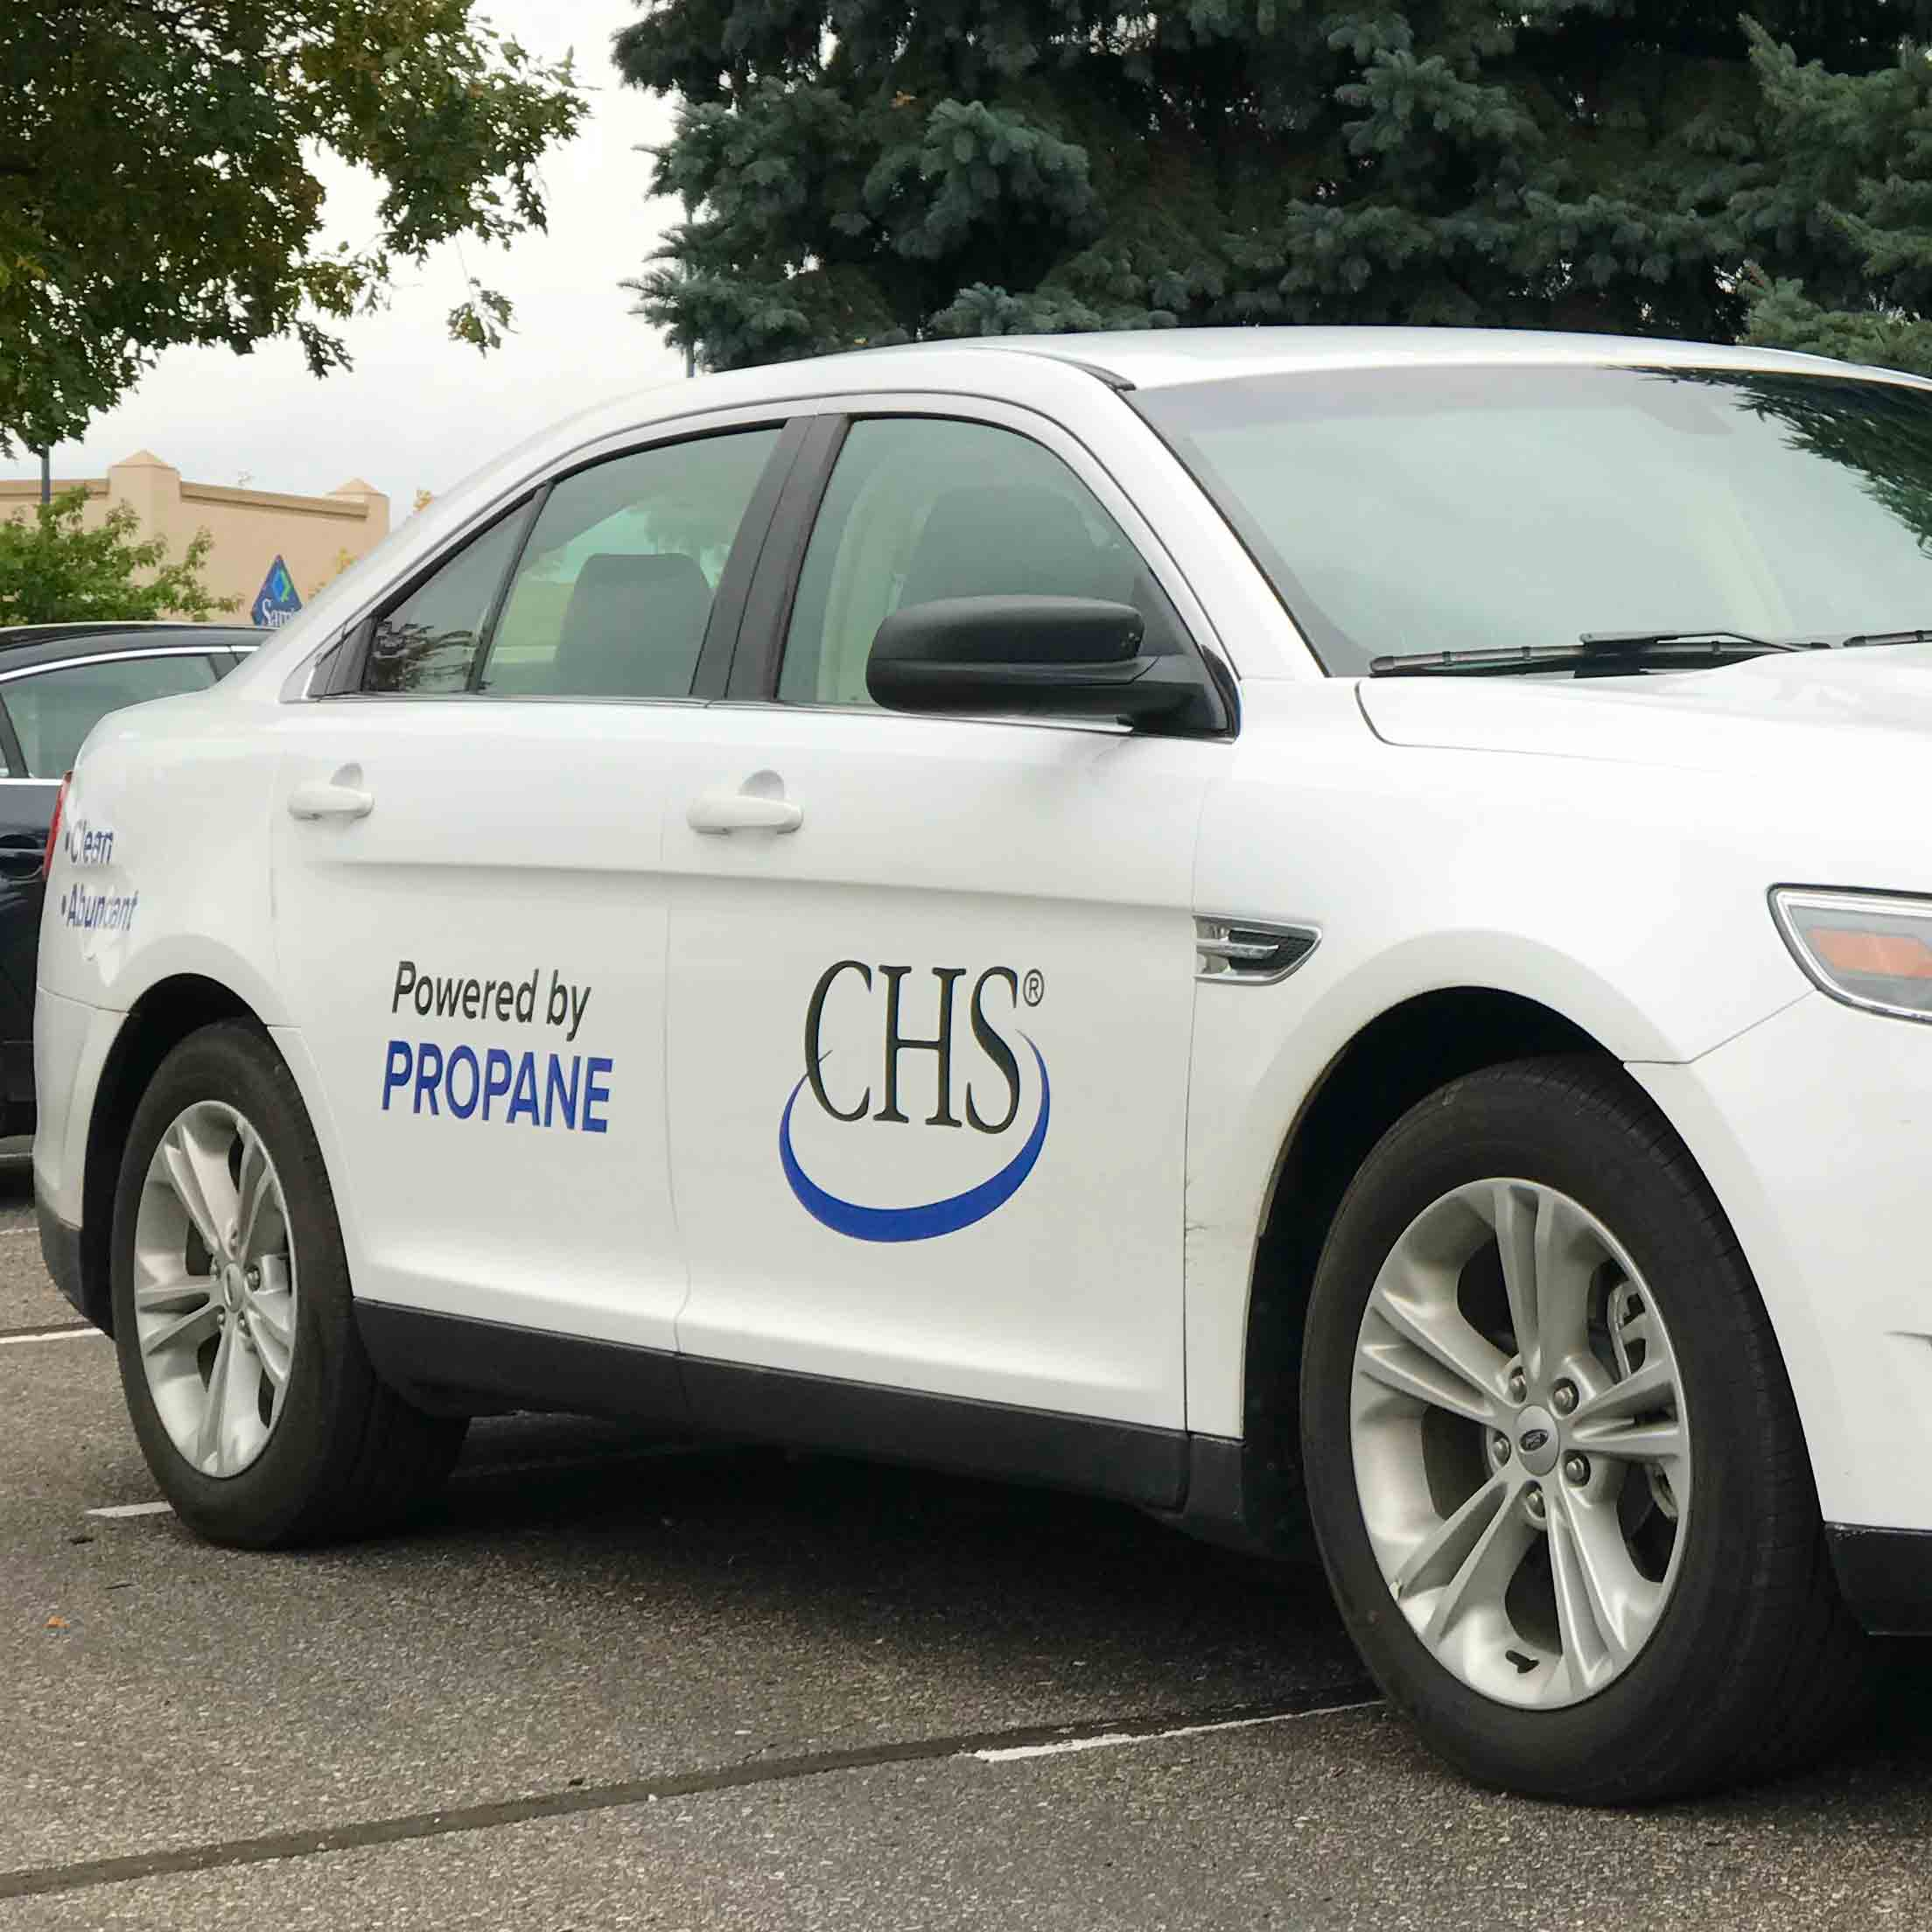 CHS propane-powered car